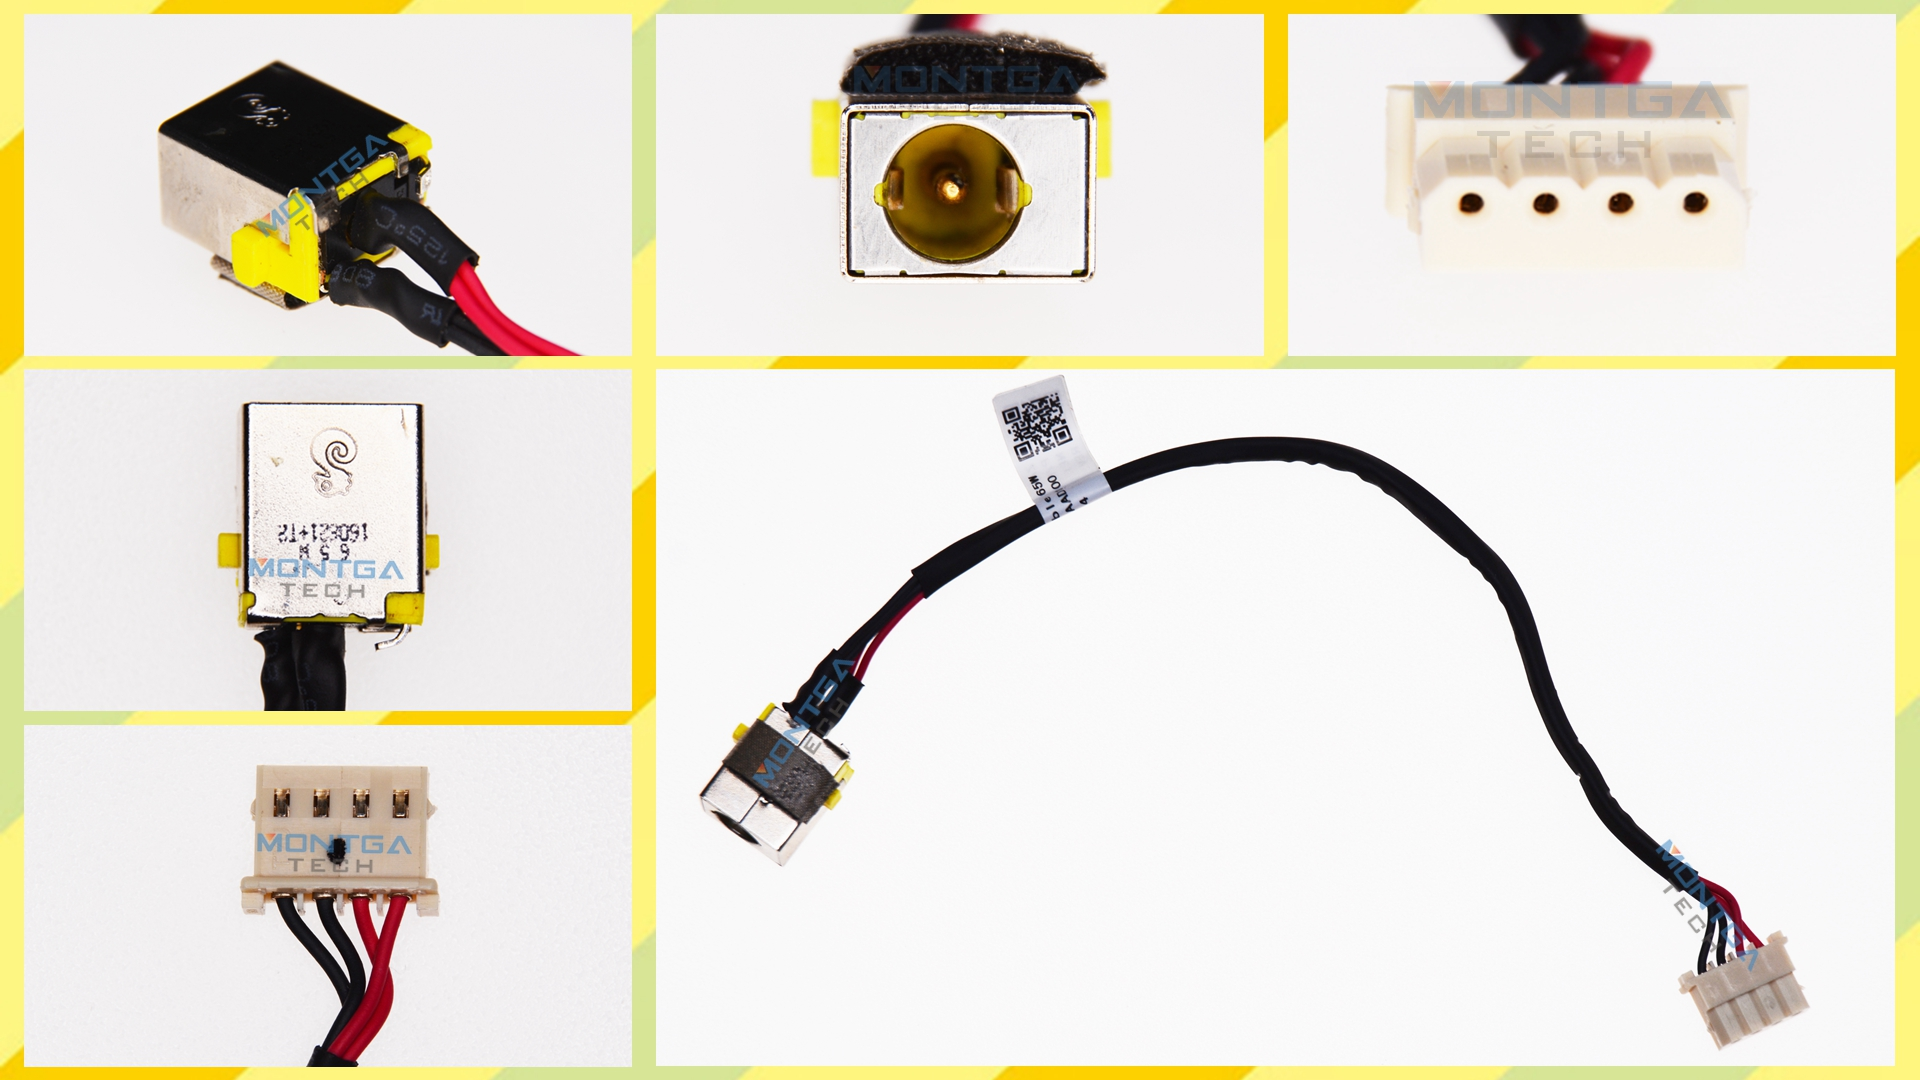 Acer E5-411 charging connector, Acer E5-411 DC Power Jack, Acer E5-411 DC IN Cable, Acer E5-411 Power Jack, Acer E5-411 plug, Acer E5-411 Jack socket, Acer E5-411 connecteur de charge,